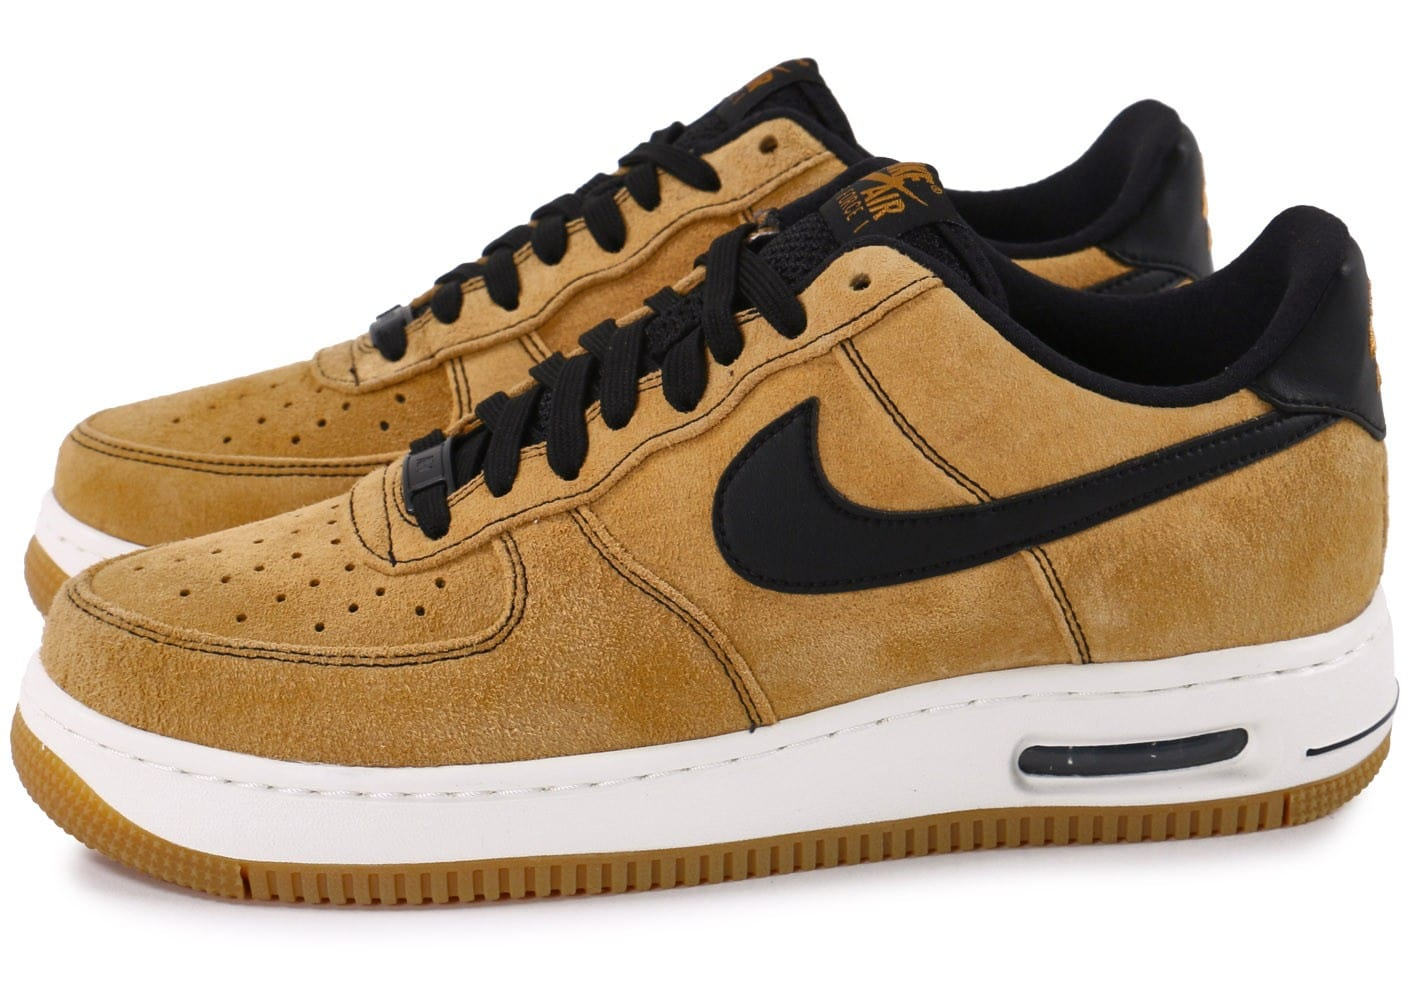 Nike Air Force Baskets 1 Elite Low Wheat Chaussures Baskets Force Homme Chausport 19fad9